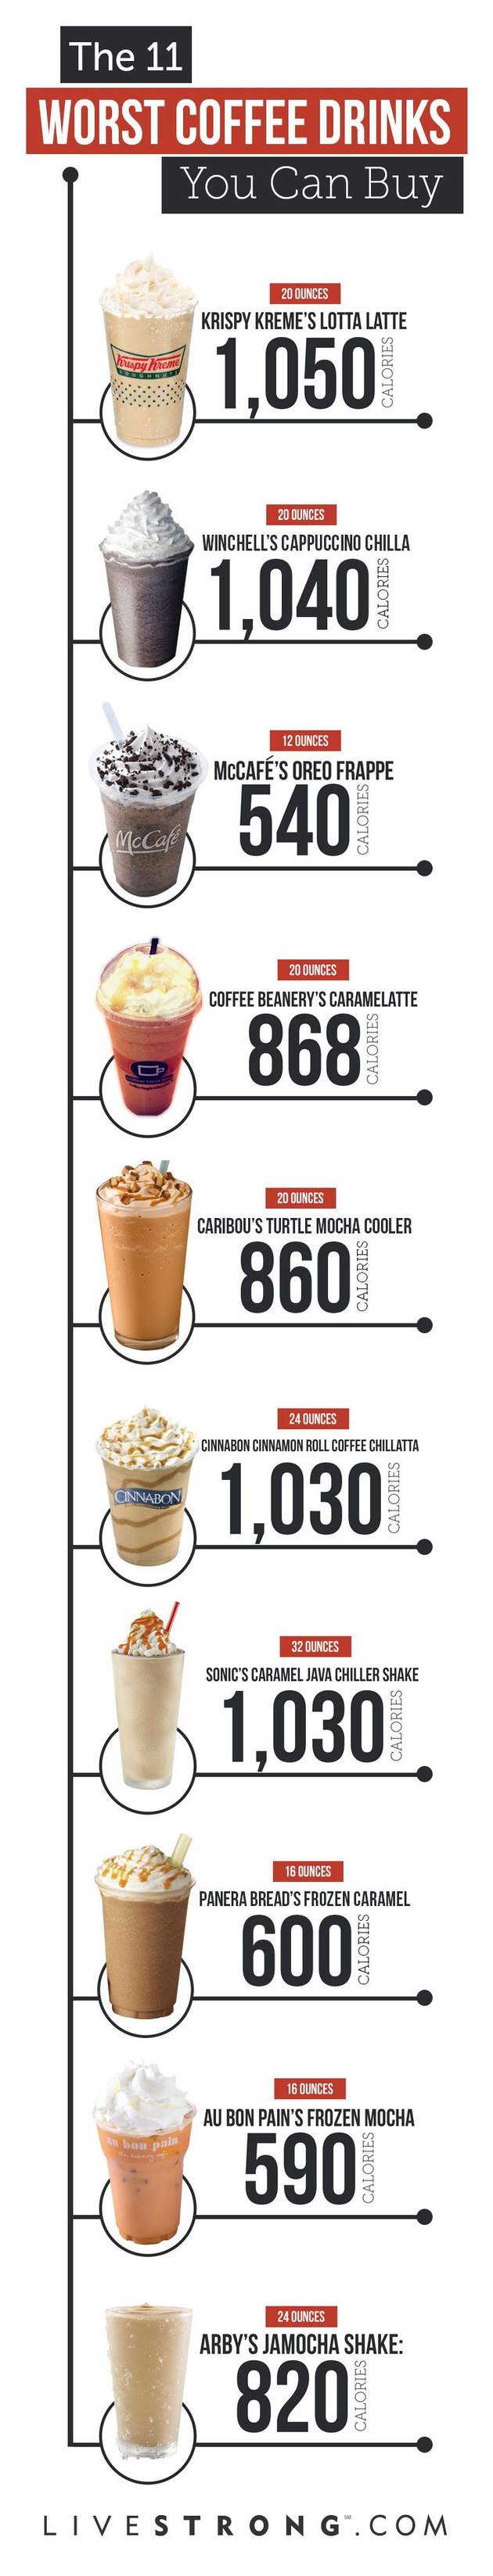 Coffee drinks and calories